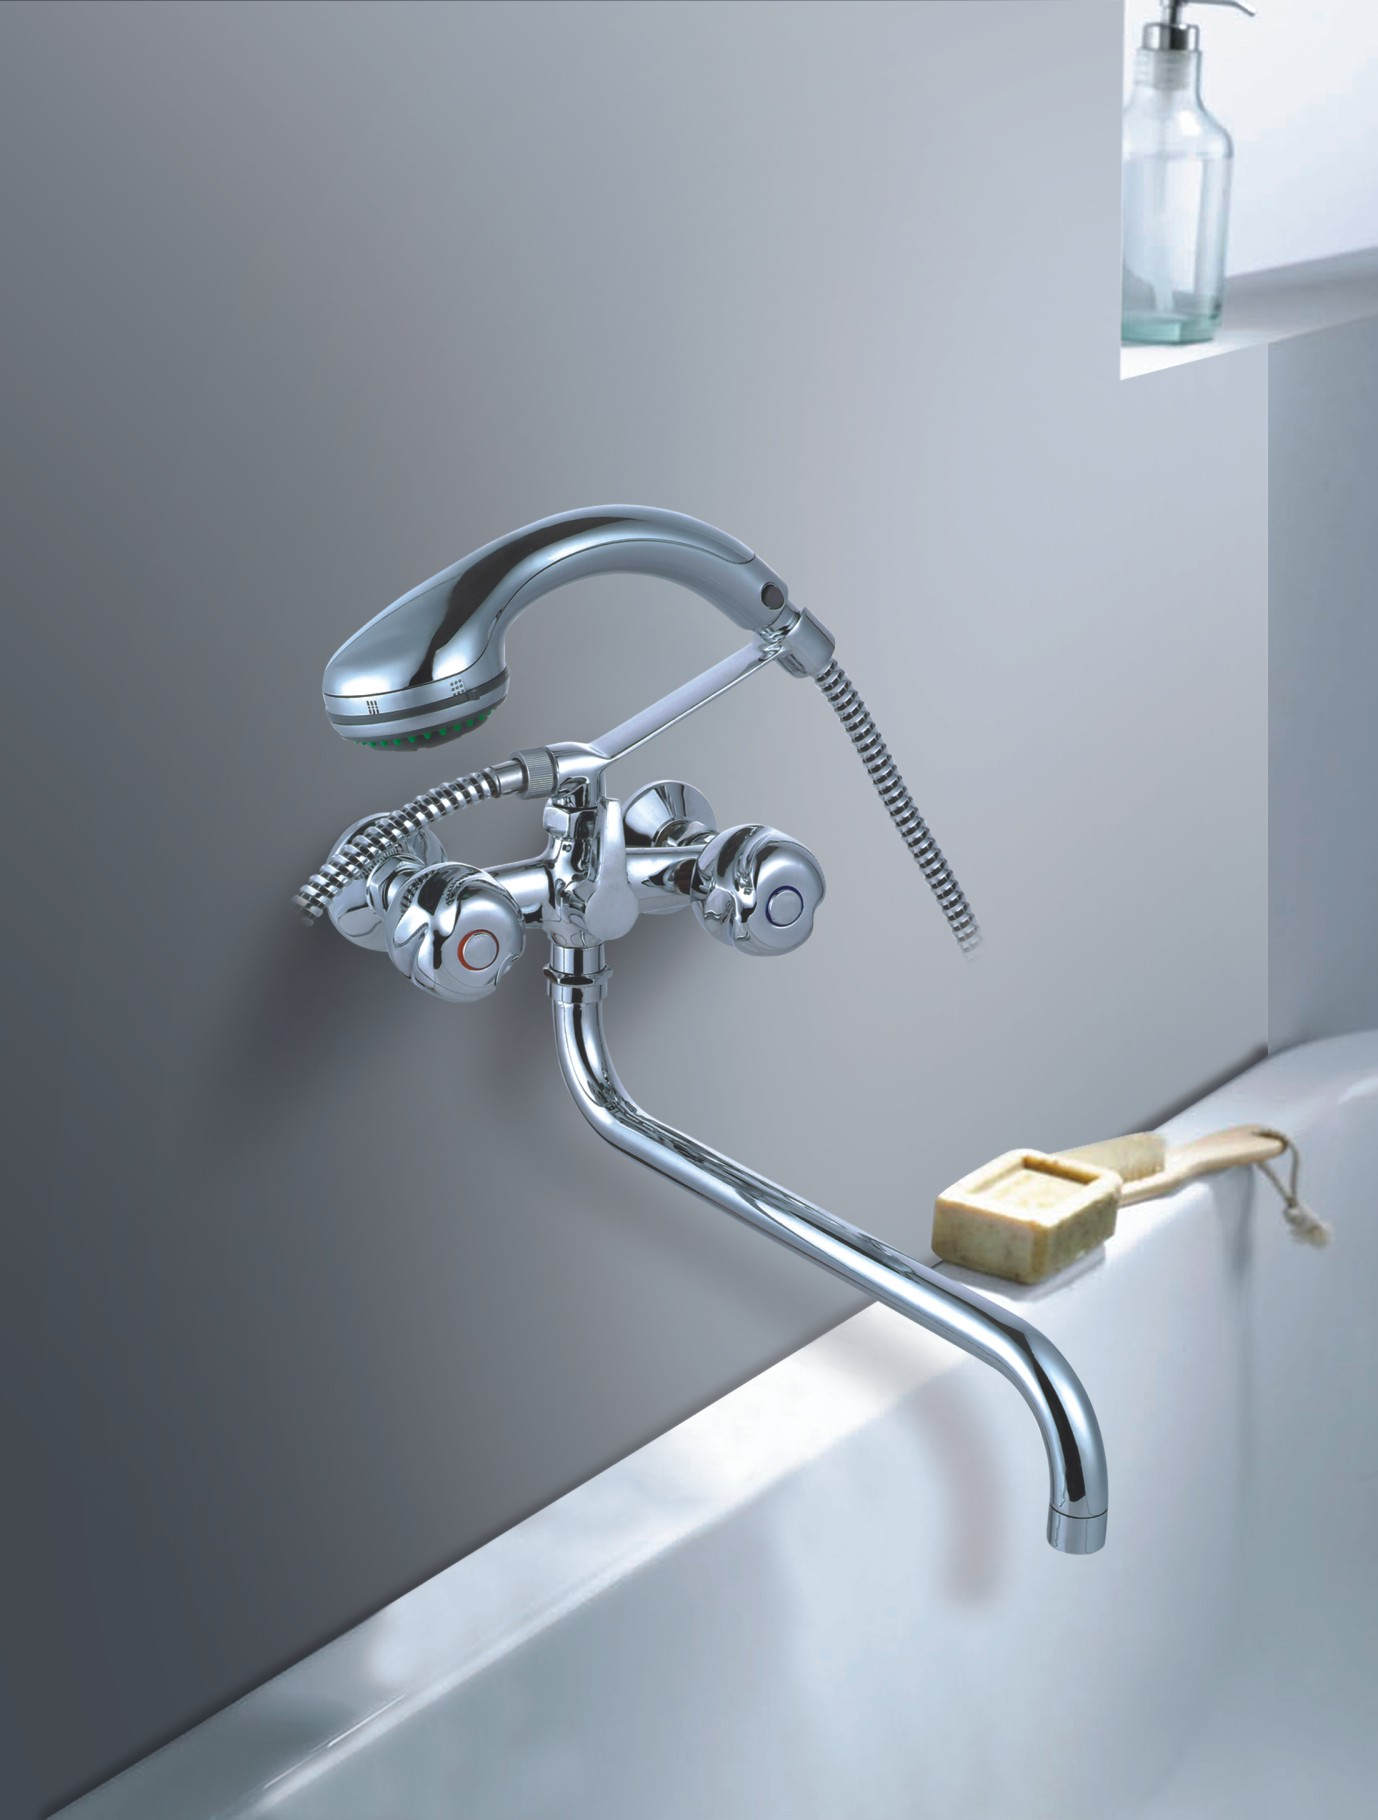 How To Change Your Bathtub Spout - Bathtub Ideas